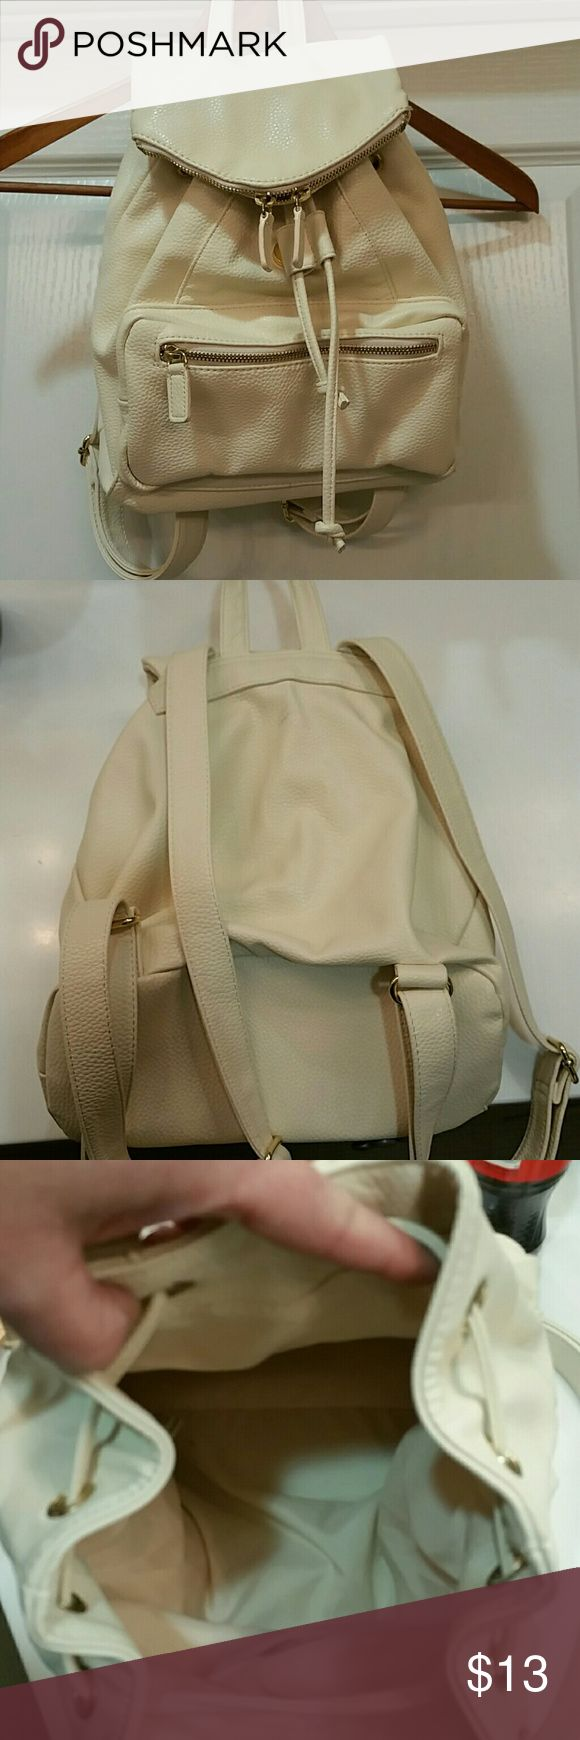 """NWOT Kimchi Blue backpack 100% polyurethane, off white. 11"""" across, aprox 12"""" deep, unfilled and unstretched. Cute go to bag. Spot clean with damp cloth when  needed. NWOT Kimchi Blue Bags Backpacks"""